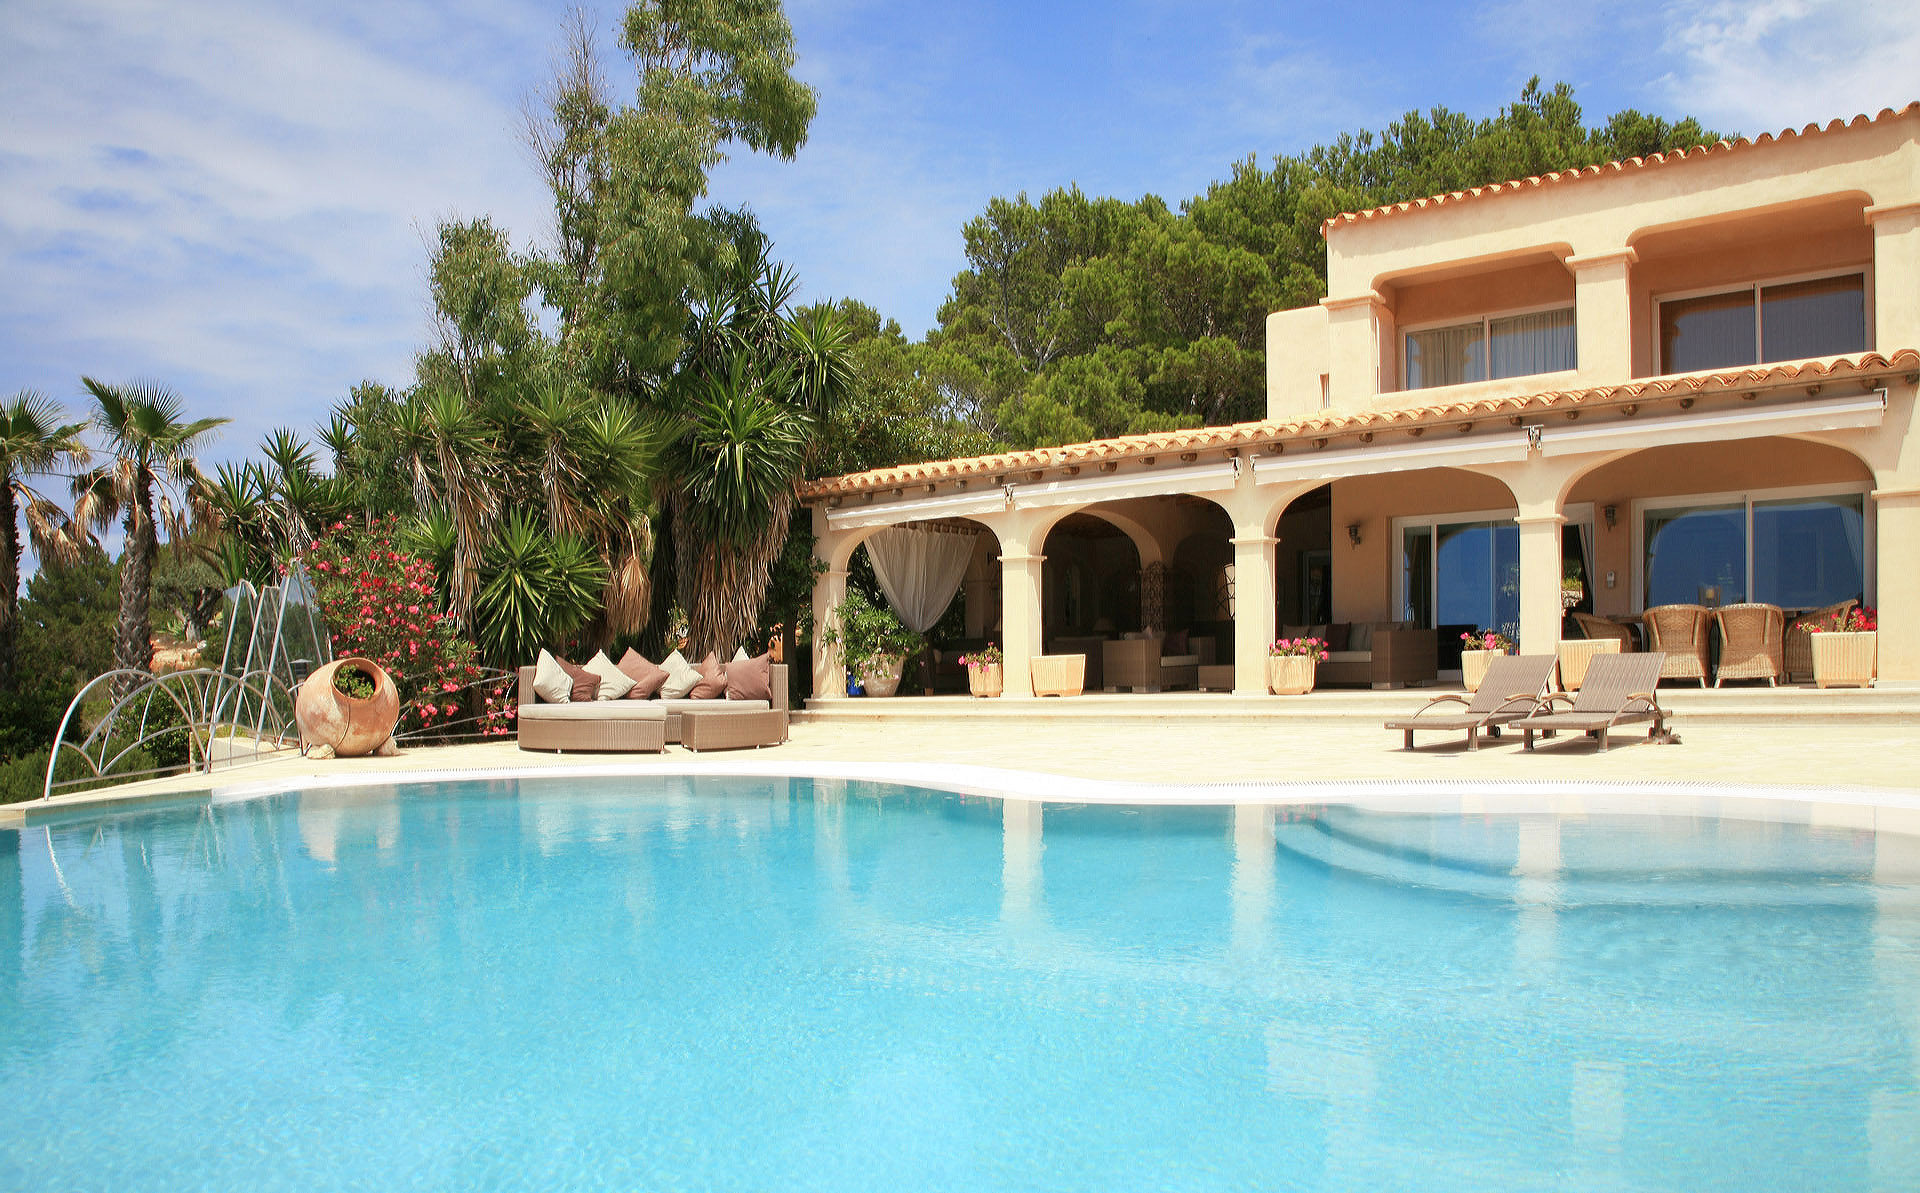 Spain: Villa in southern style